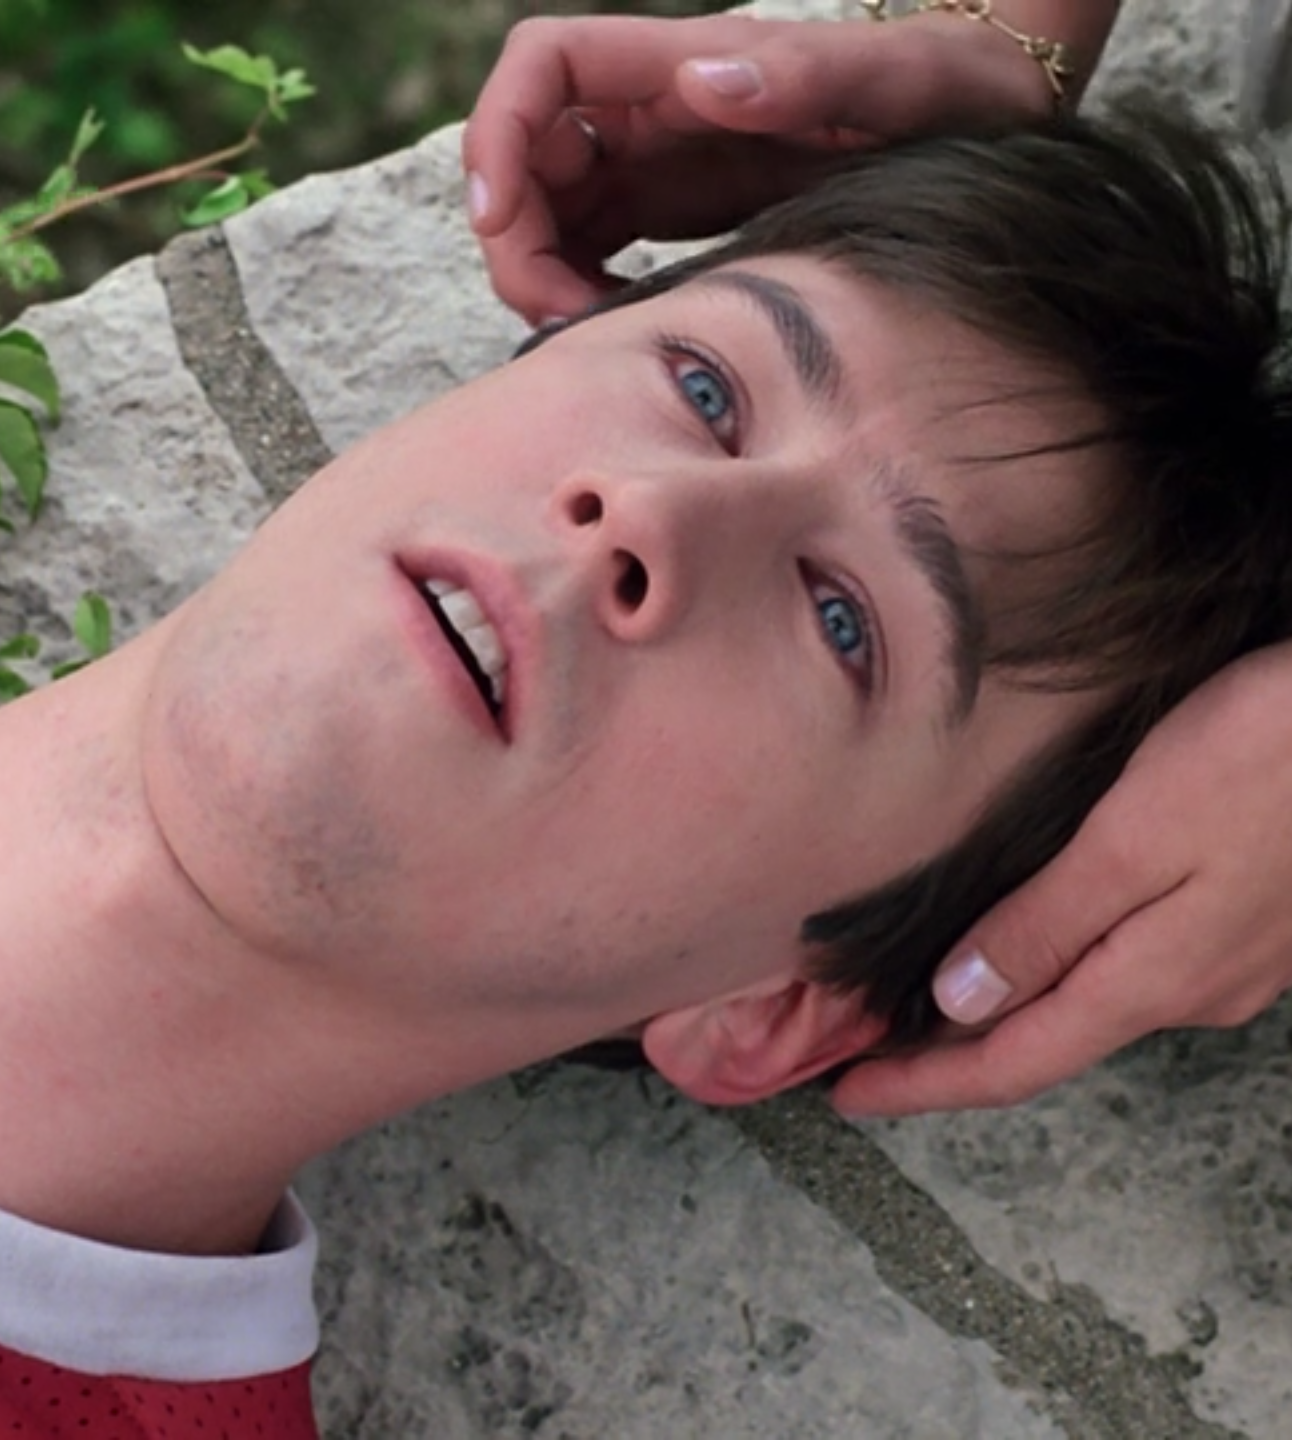 beuller 13 e1578911170448 20 Reasons Why Ferris Bueller Is Actually An Awful Person